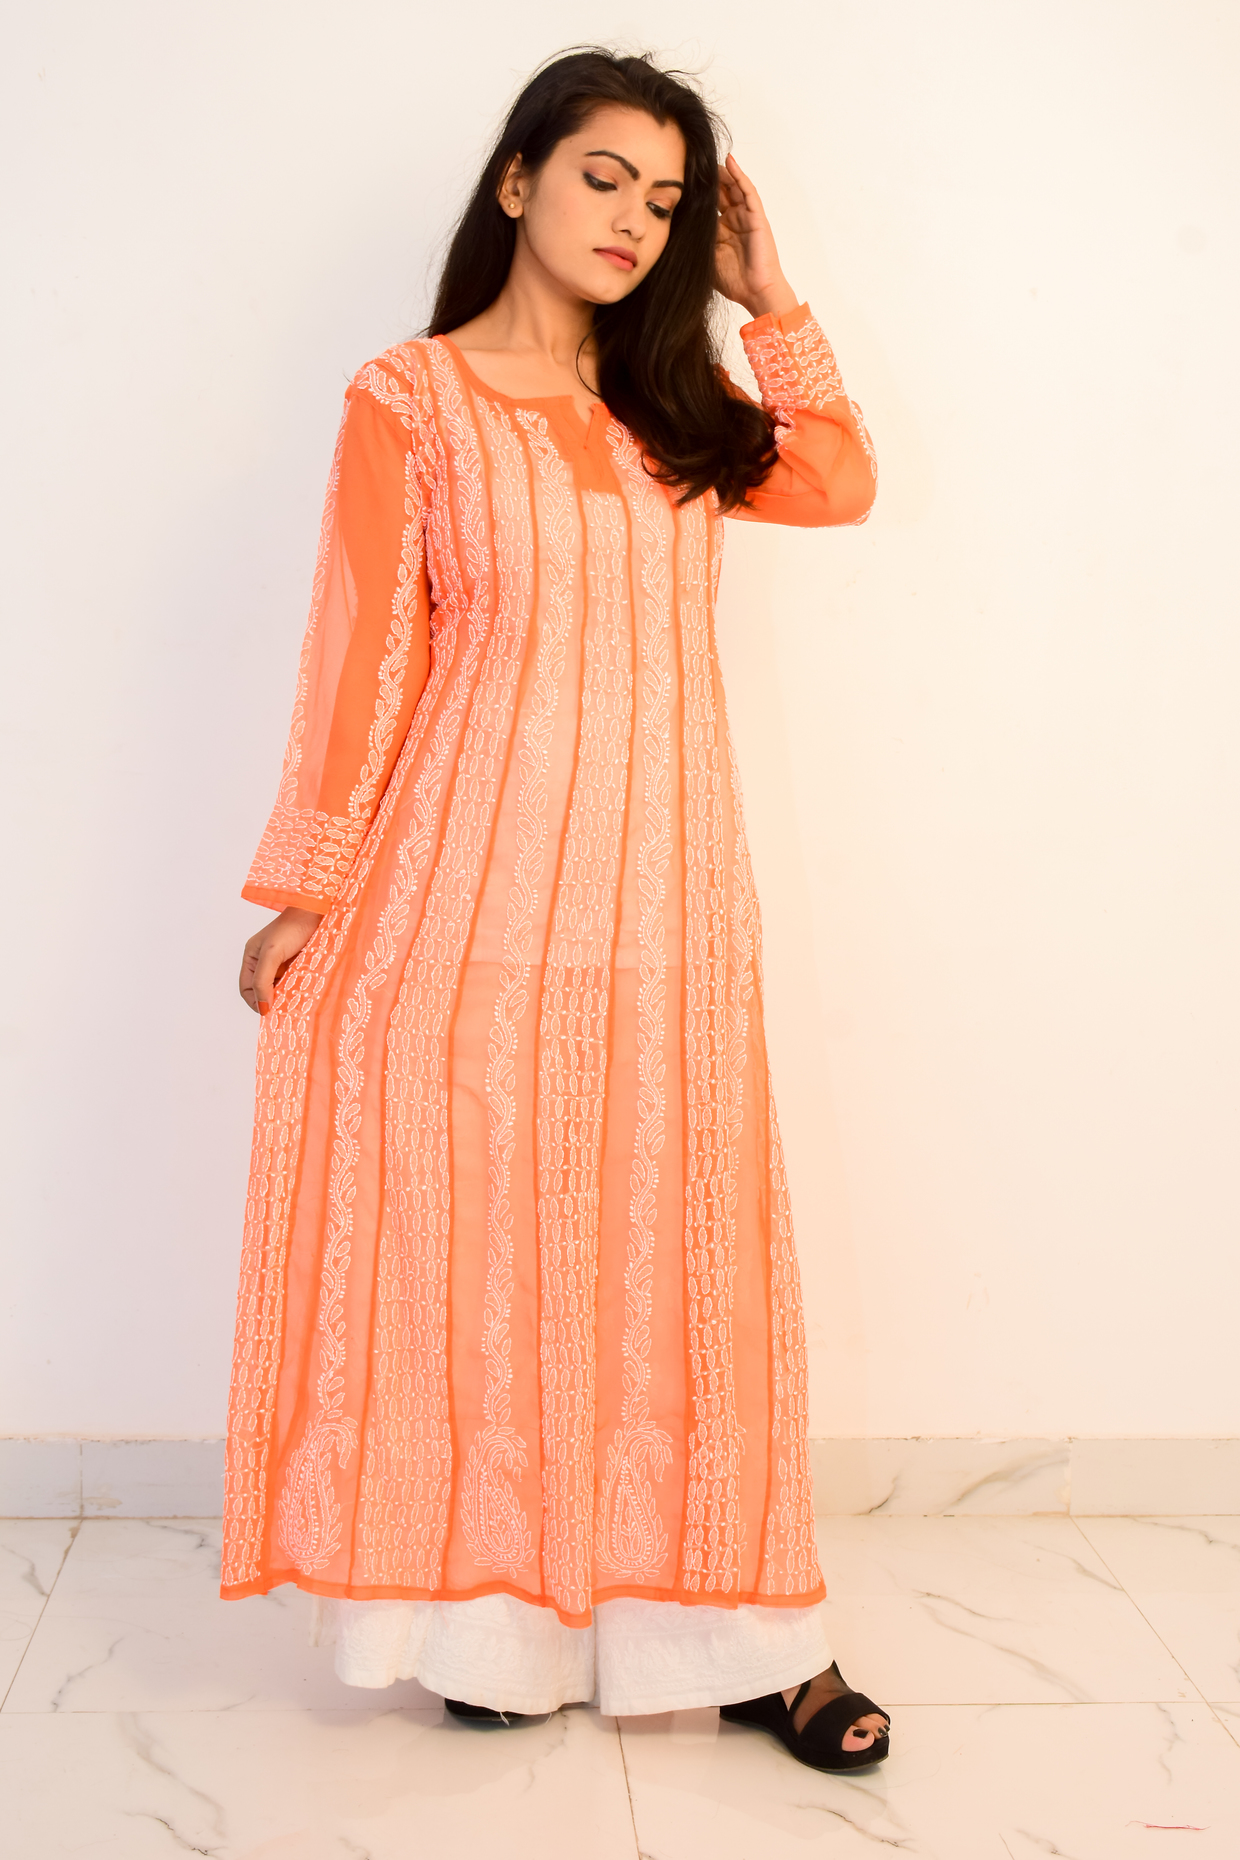 Buy Hand Embroidered Lucknowi Chikan Orange and White Georgette Kurti